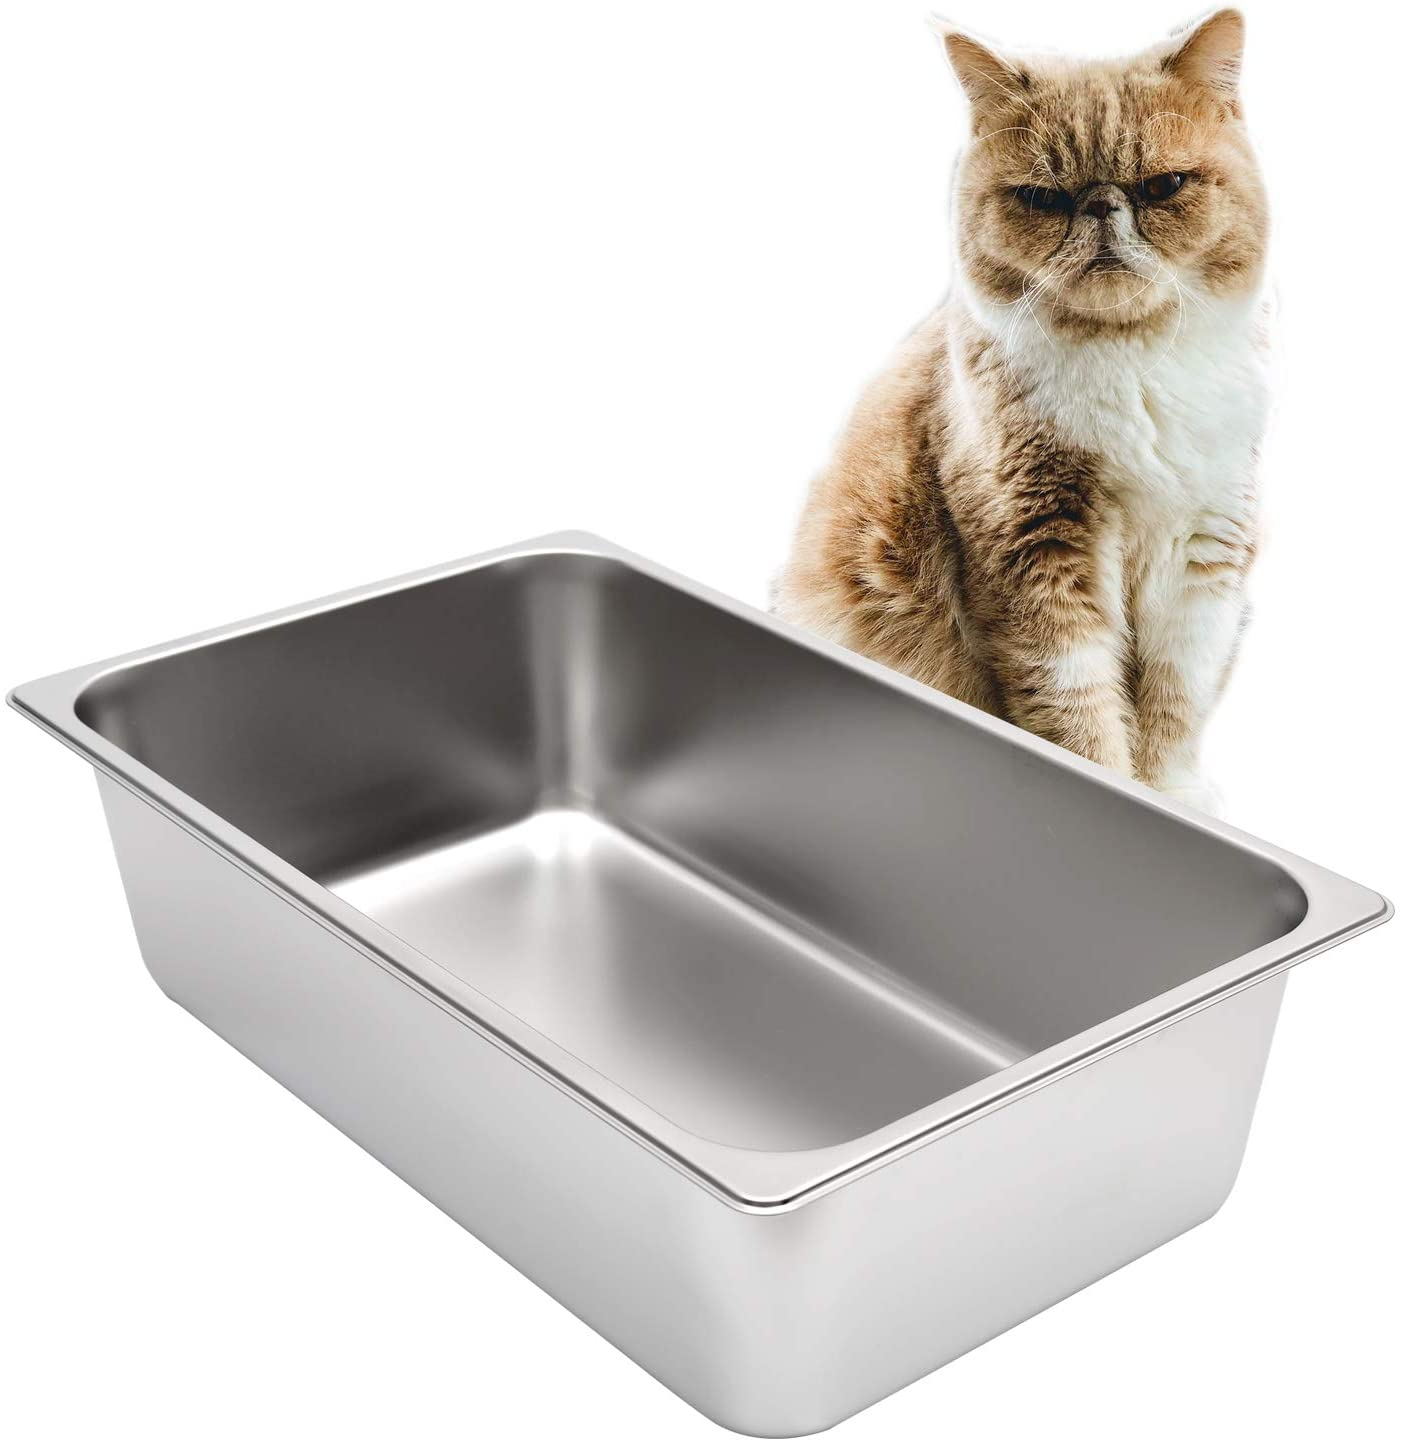 Easy-to-use Kichwit Sale SALE% OFF Stainless Steel Litter Box for Stick Cat and Non Rabbit